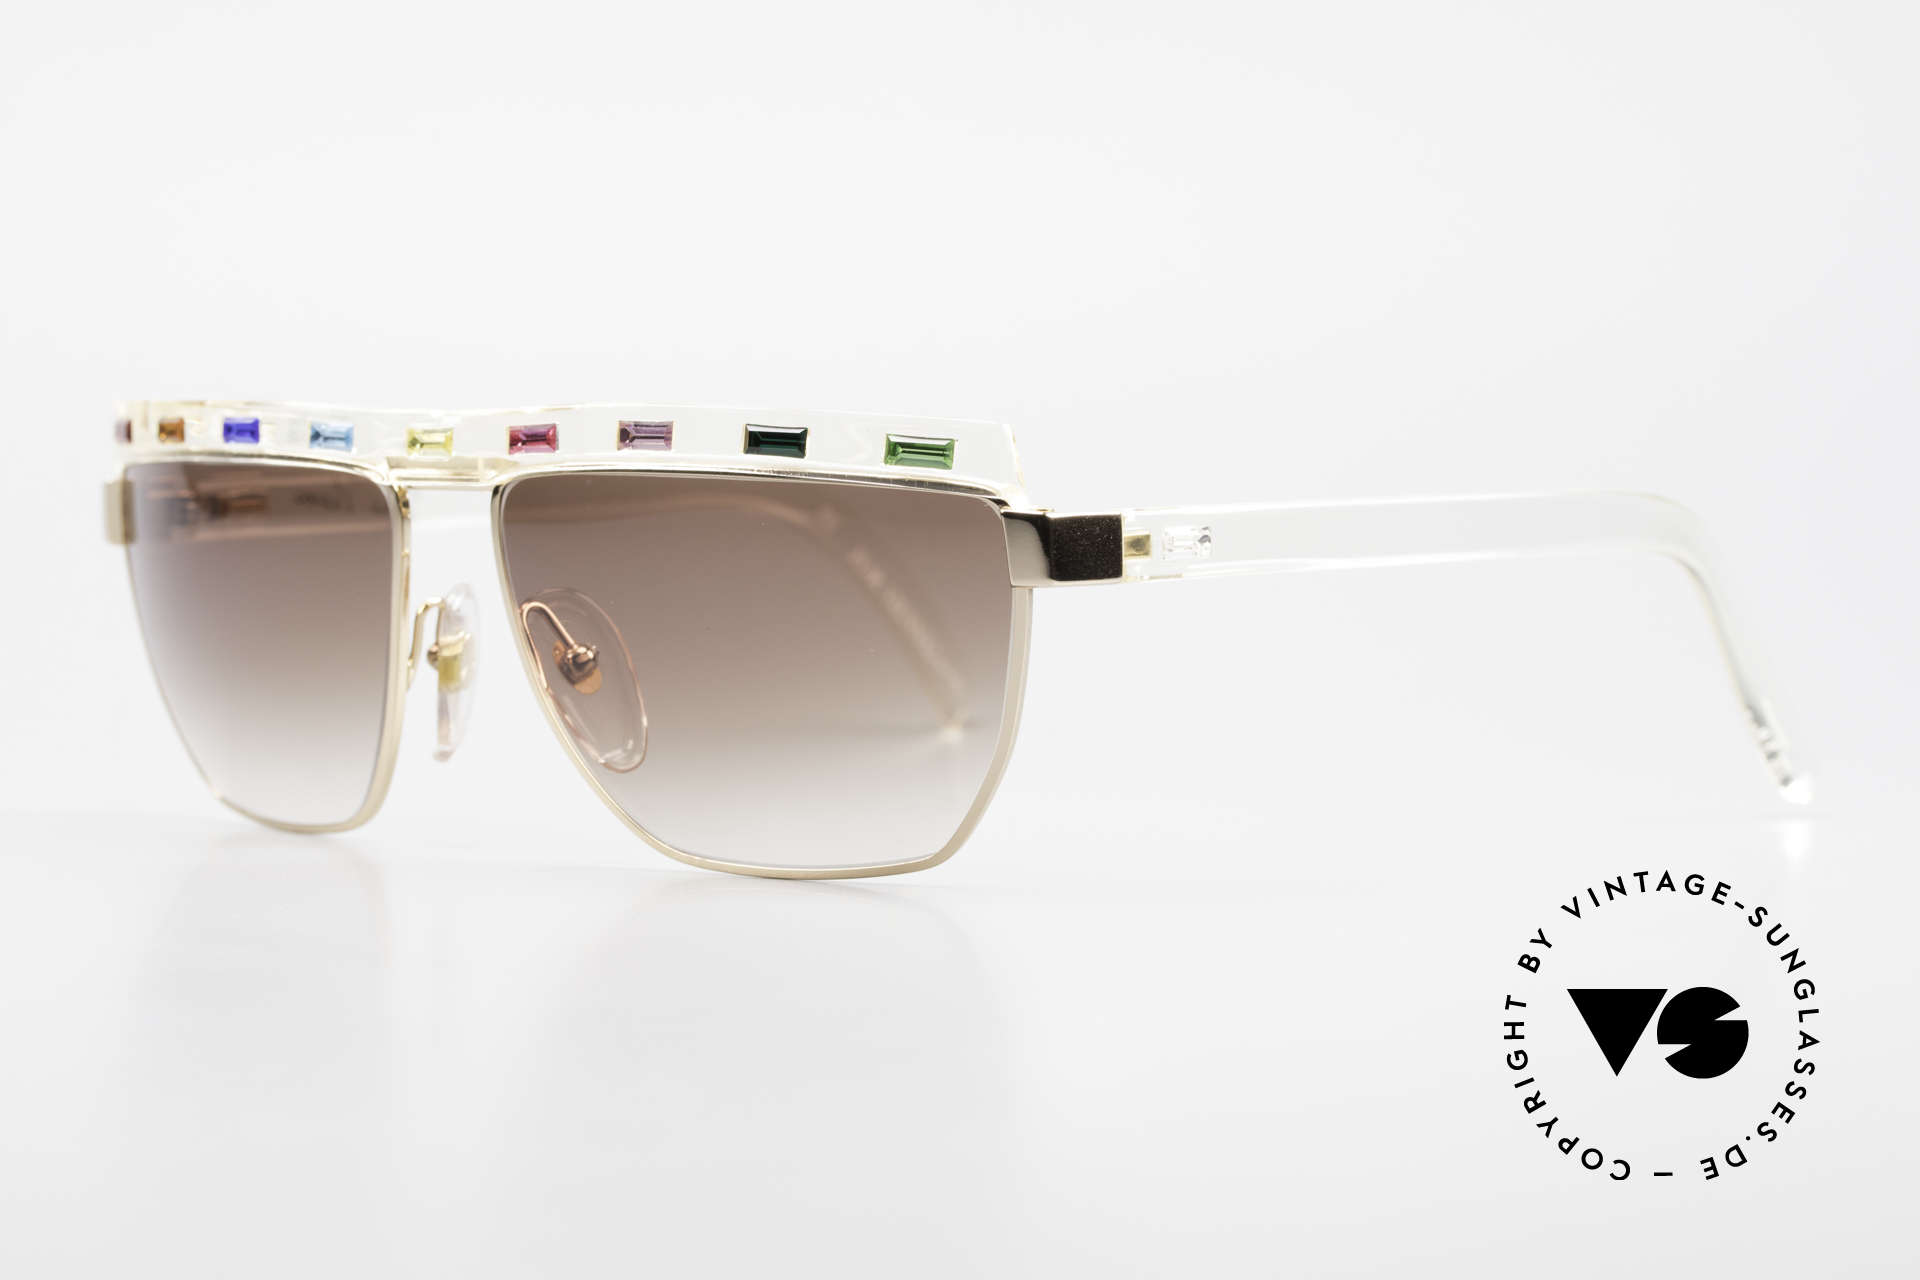 Paloma Picasso 3706 With Colors Of All Gemstones, in 1990, Paloma created these beautiful sunglasses, Made for Women